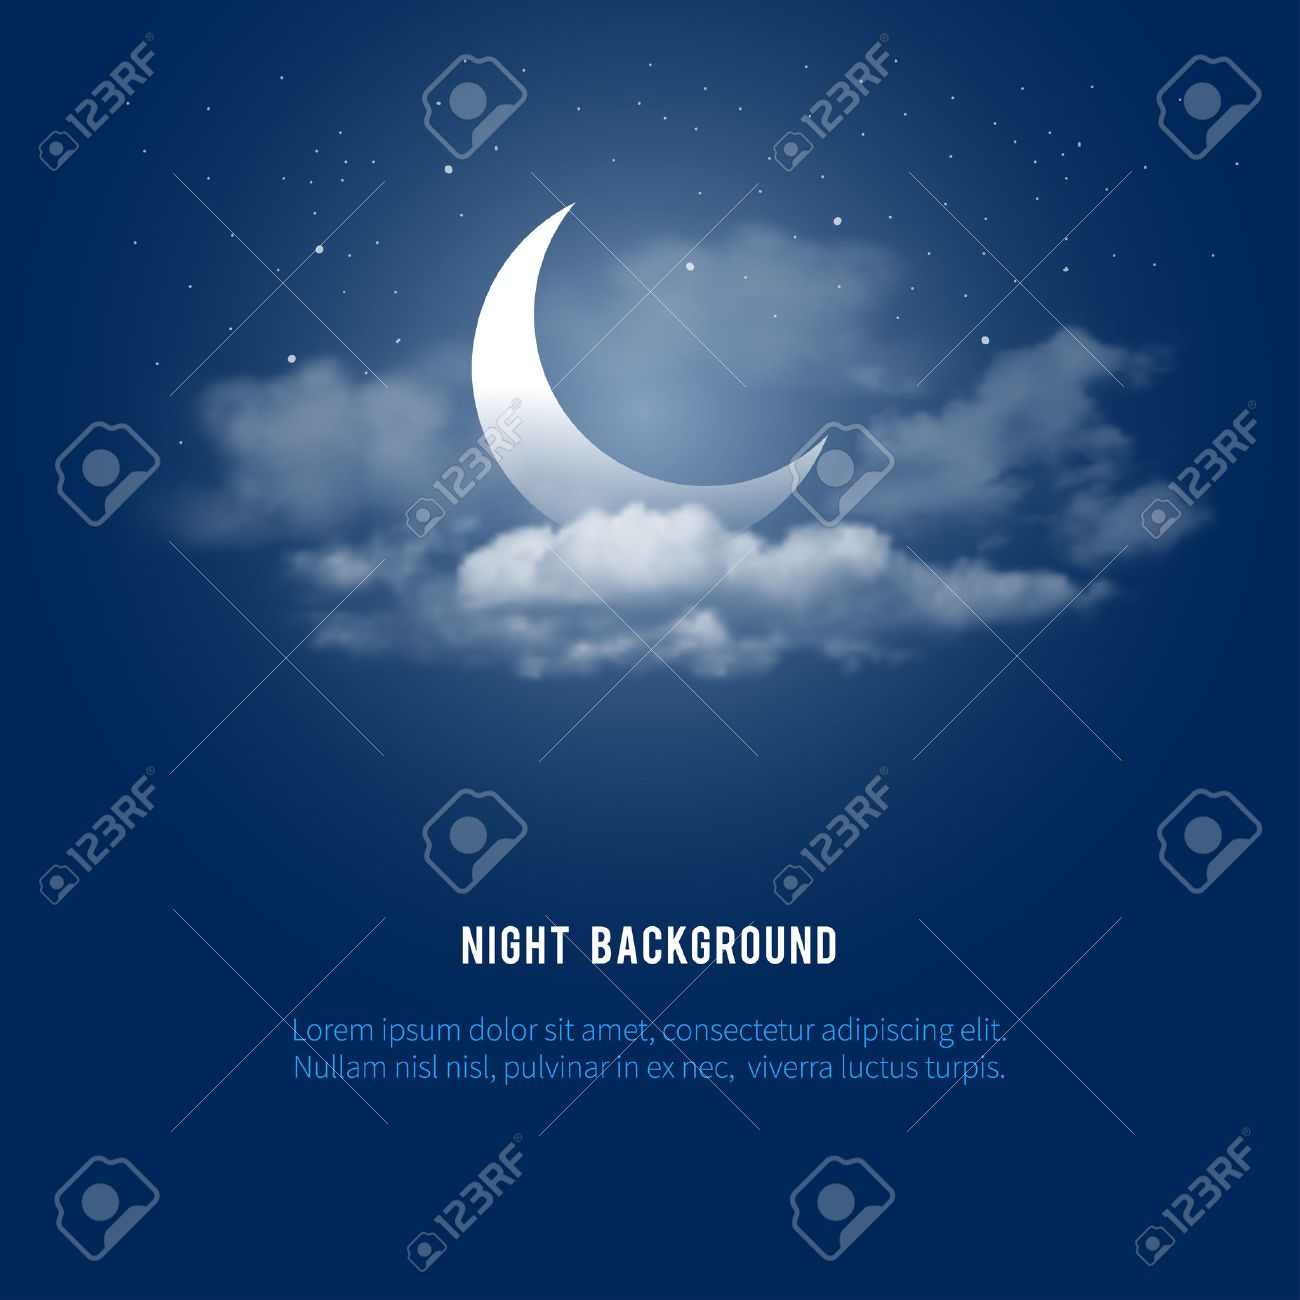 Mystical Night sky background with half moon, clouds and stars. Moonlight night. Vector illustration. - 55571689